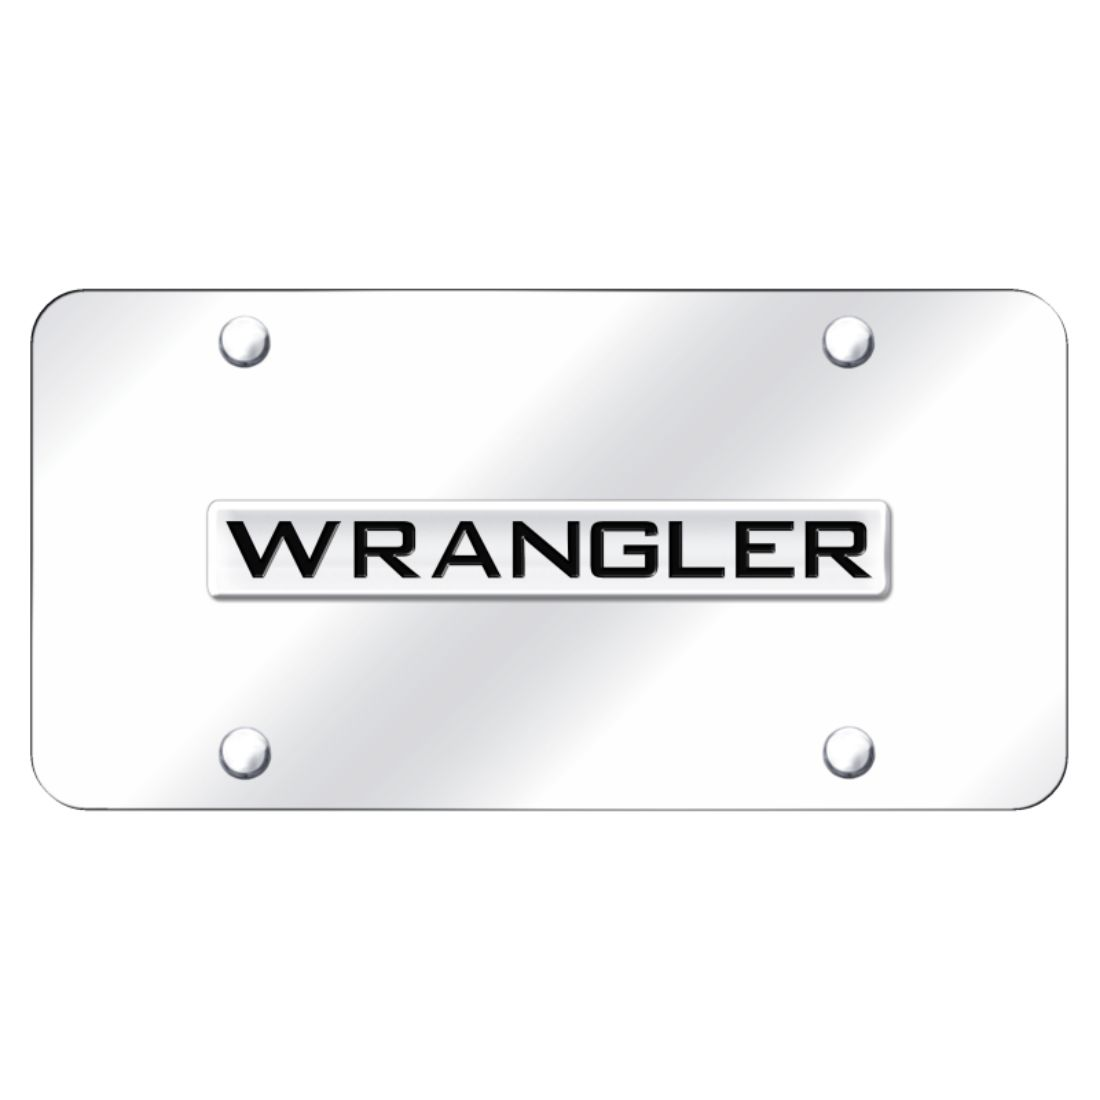 Jeep Wrangler Chrome Stainless Steel License Plate